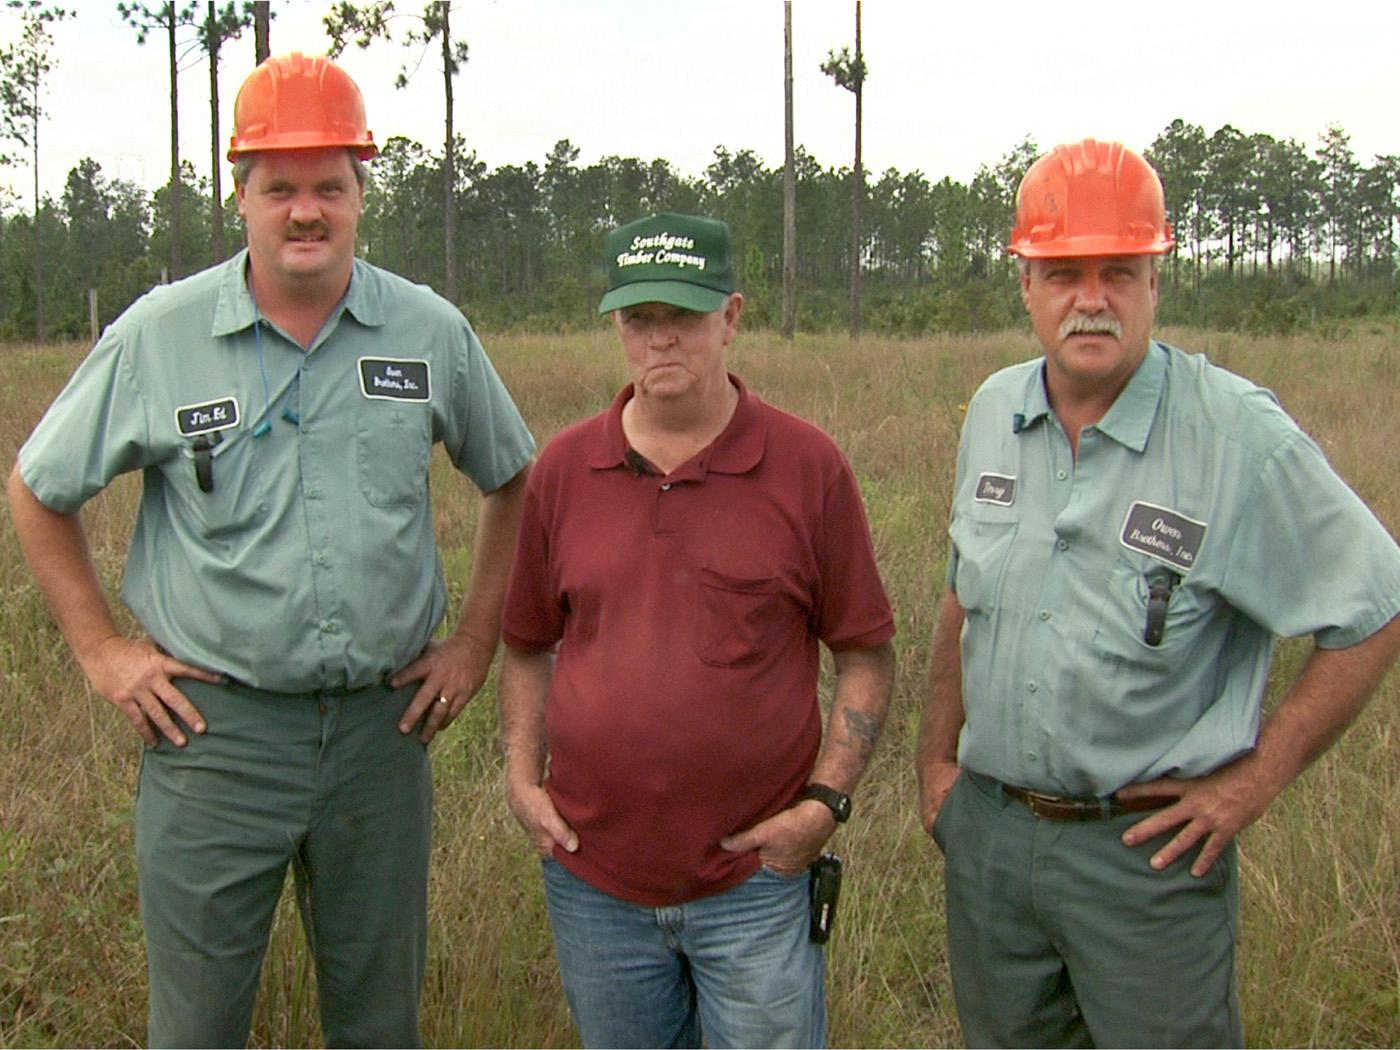 Jim Ed Owen, left, and Terry Owen, far right, of Wiggins, learned the craft of logging and the importance of stewardship from their father, Walt. The brothers have operated their own business for more than 11 years. (Photo bb Leighton Spann)